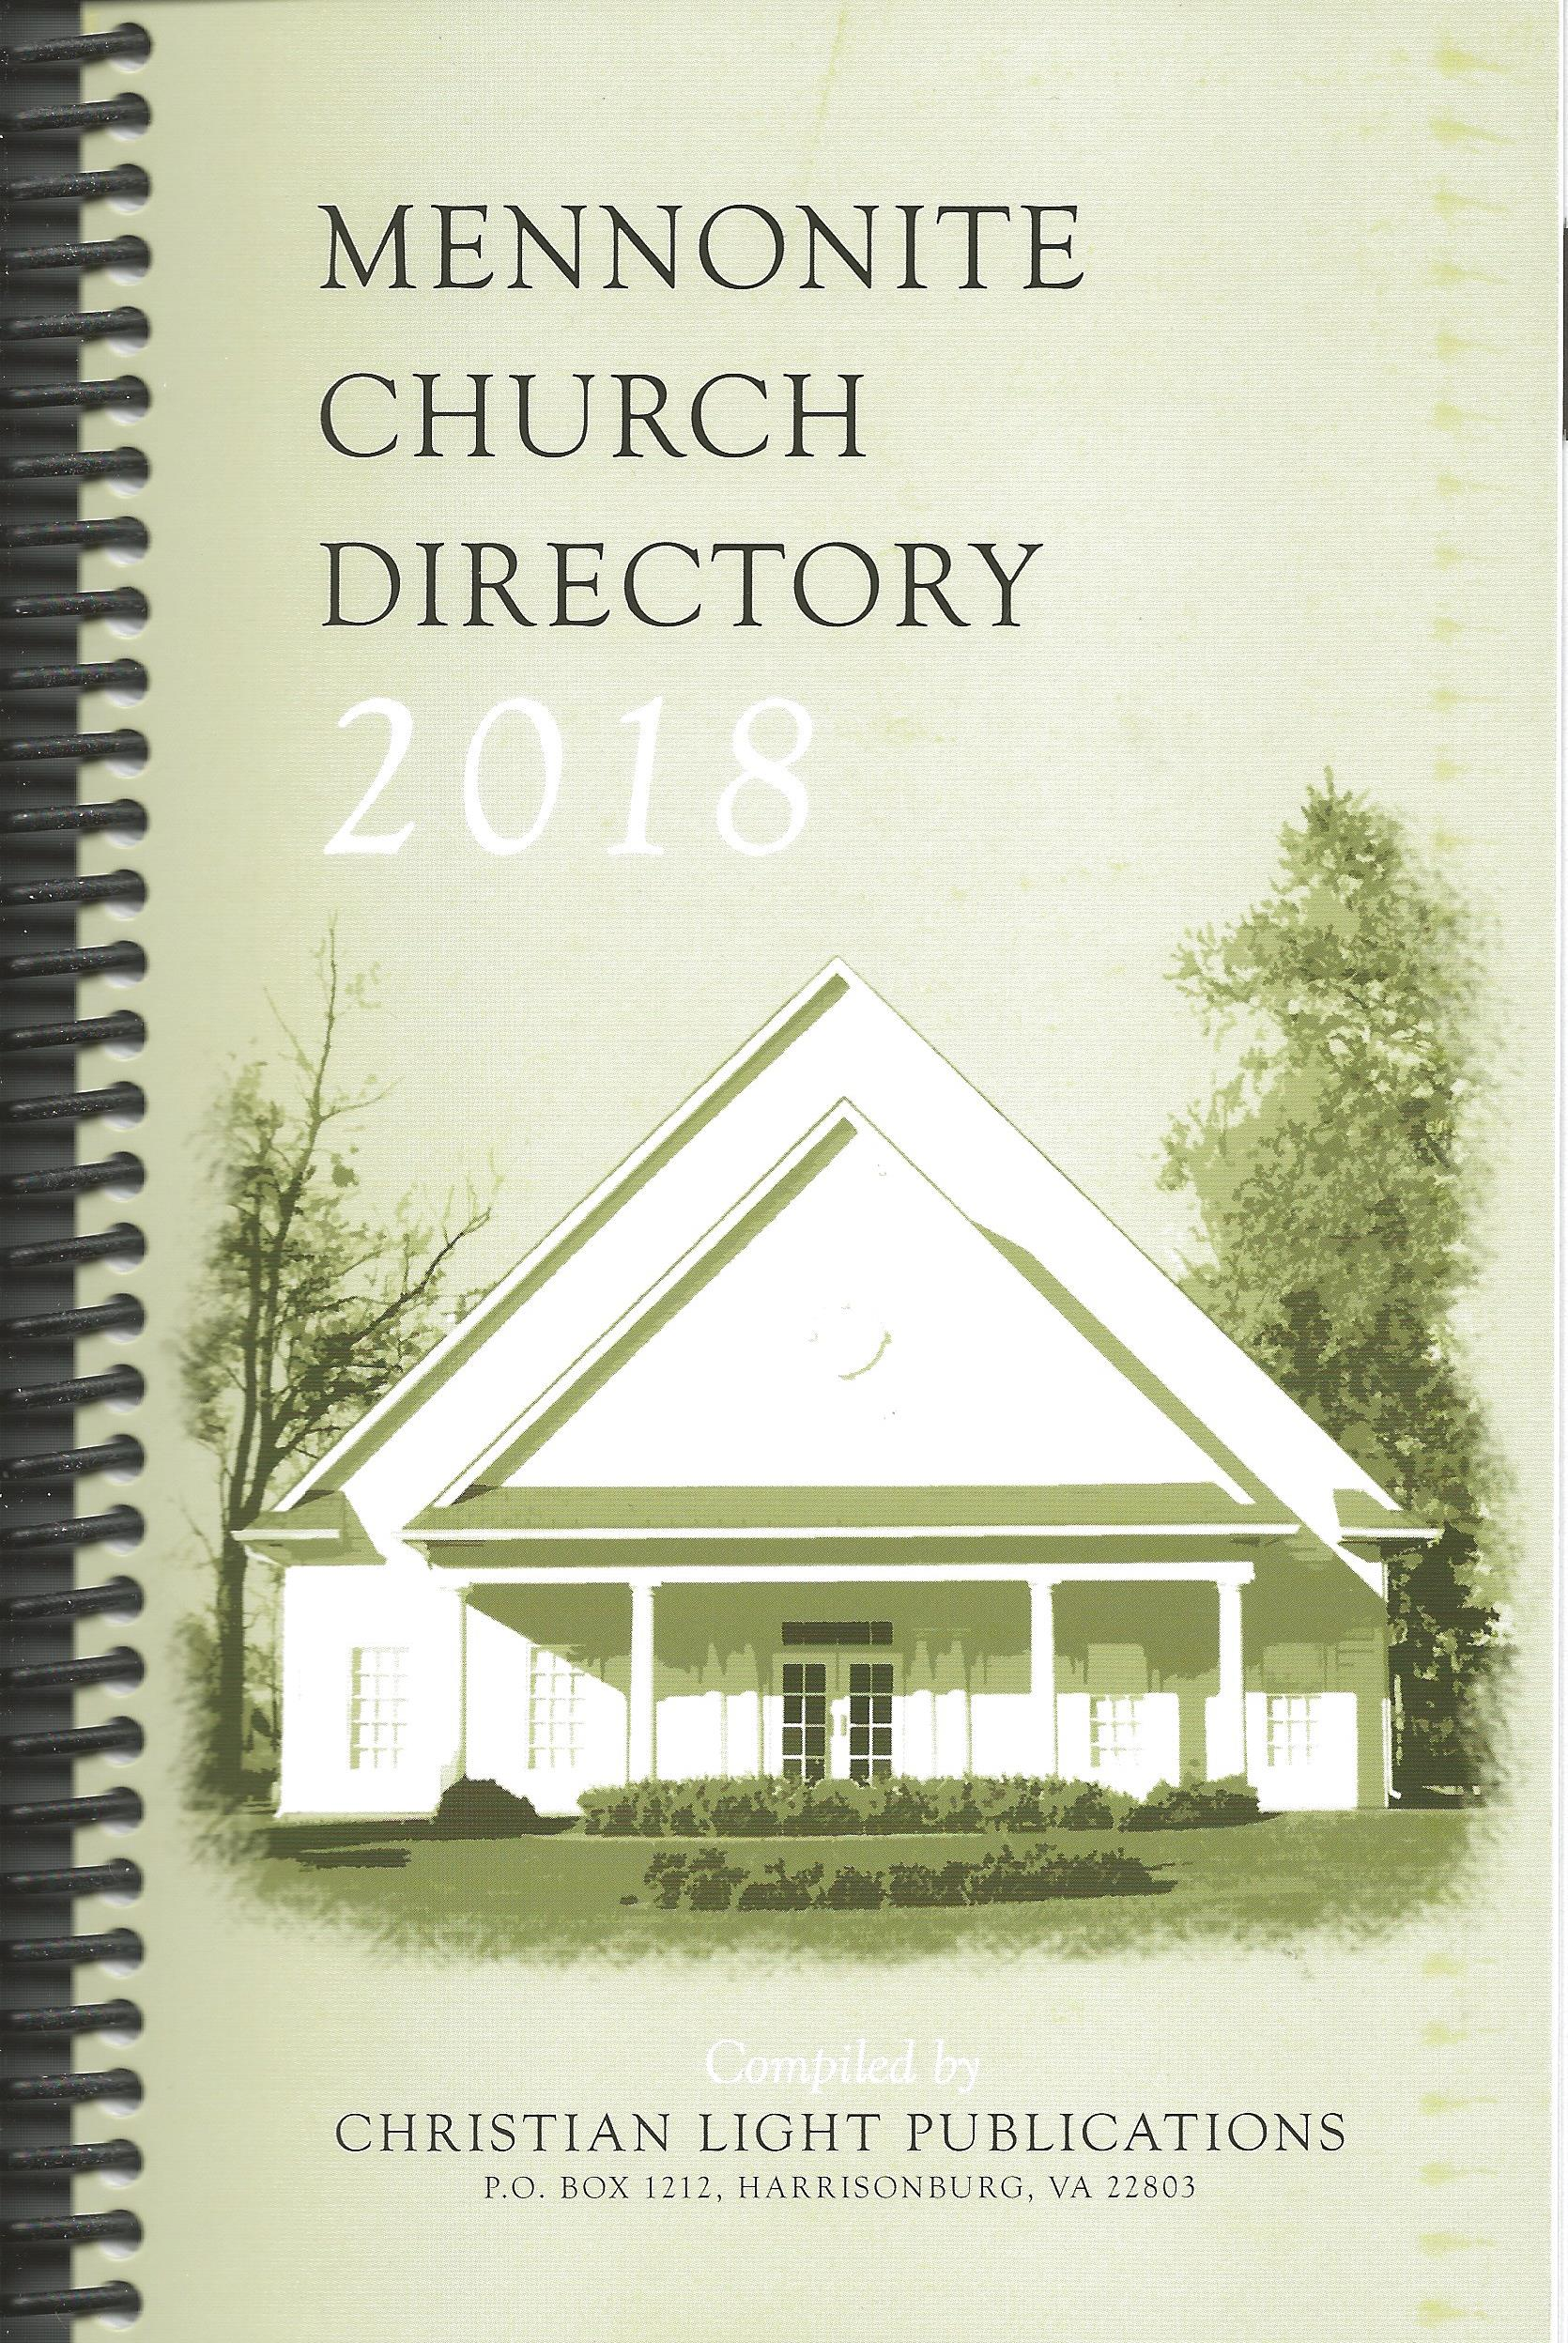 2018 MENNONITE CHURCH DIRECTORY CLP